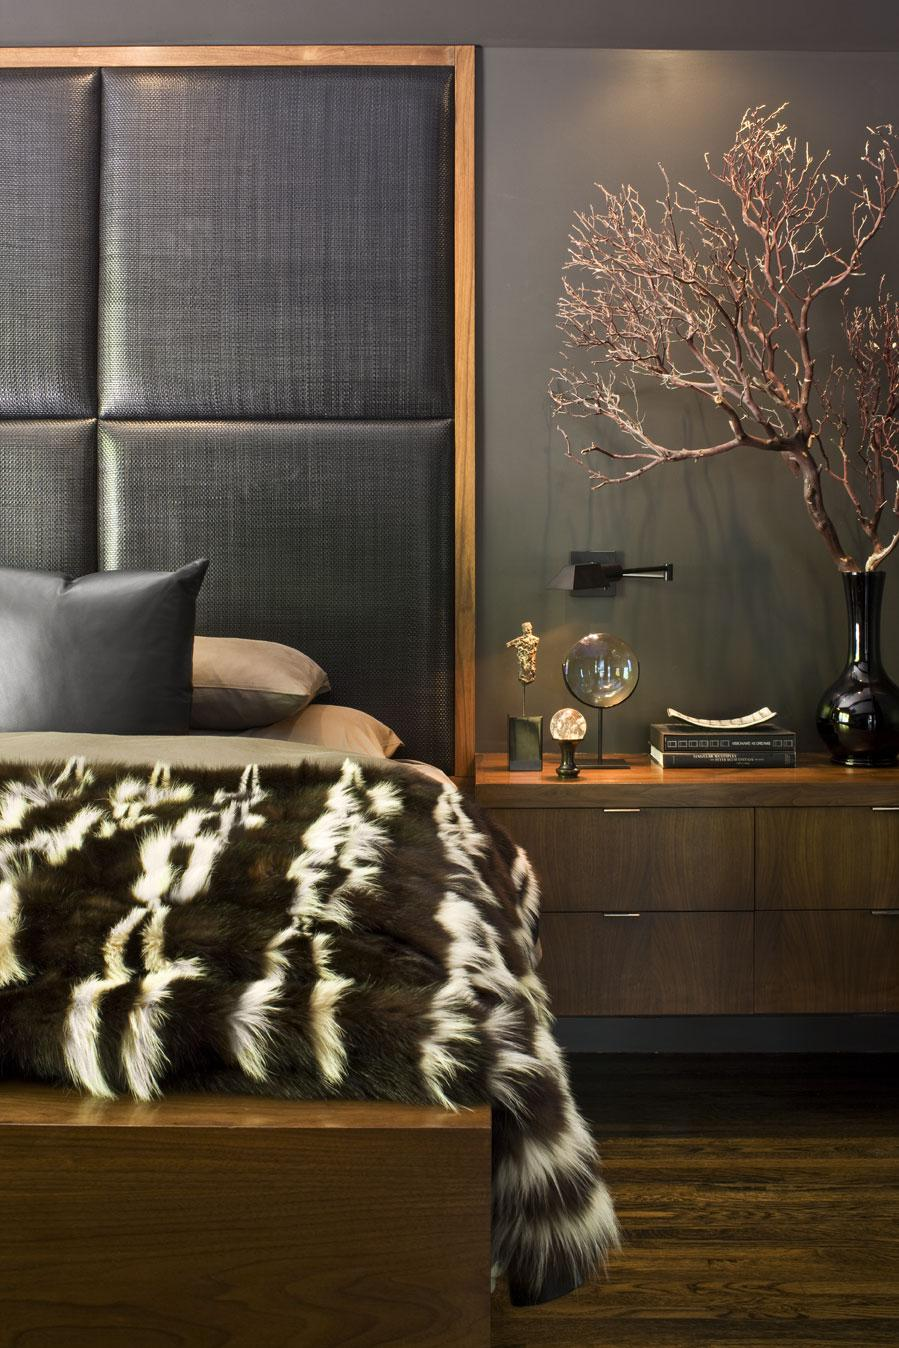 BEVERLY HILLS, CA Bedroom Contemporary Eclectic By Jeff Andrews Design